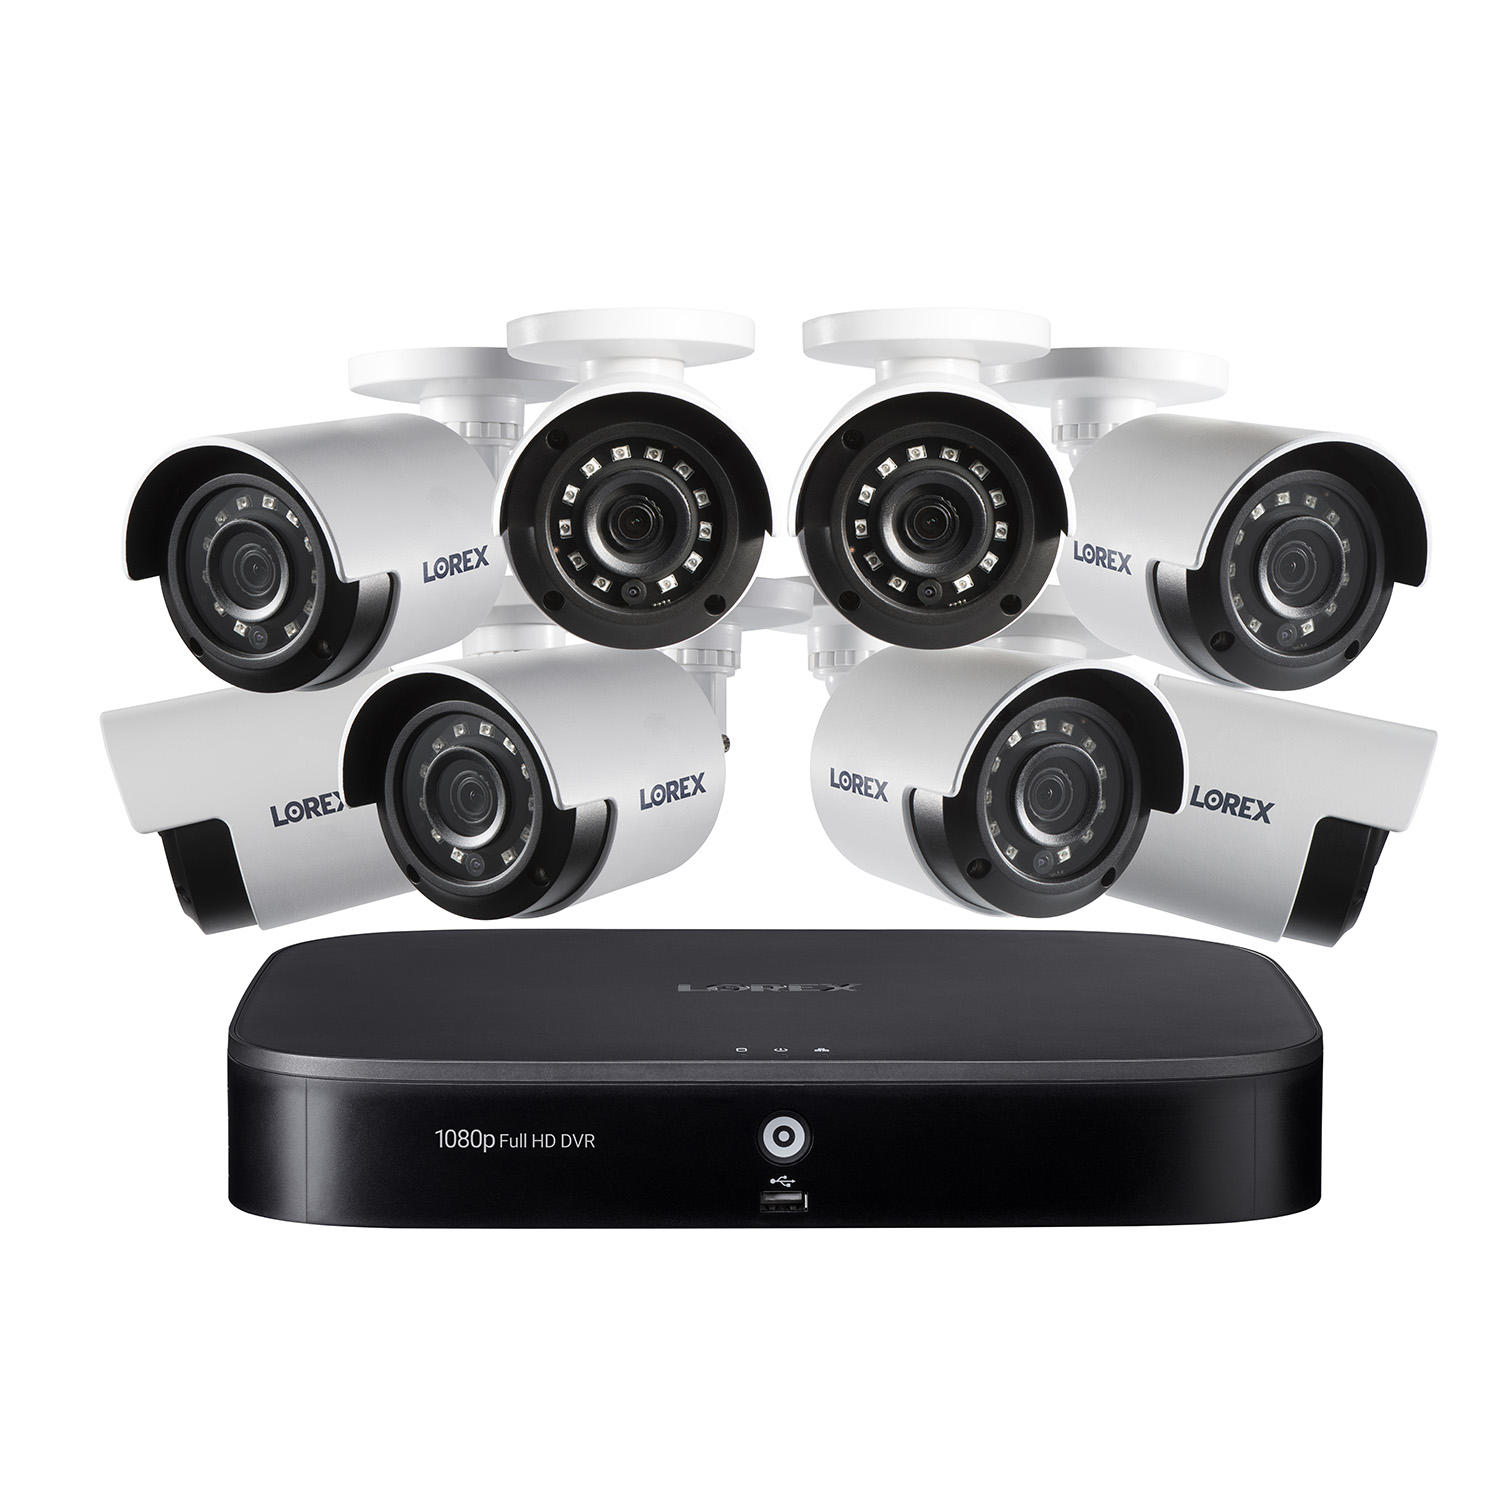 Lorex DP181-82NAE 8 Channel 1080P Surveillance System with 1TB HDD and 8 x Cameras